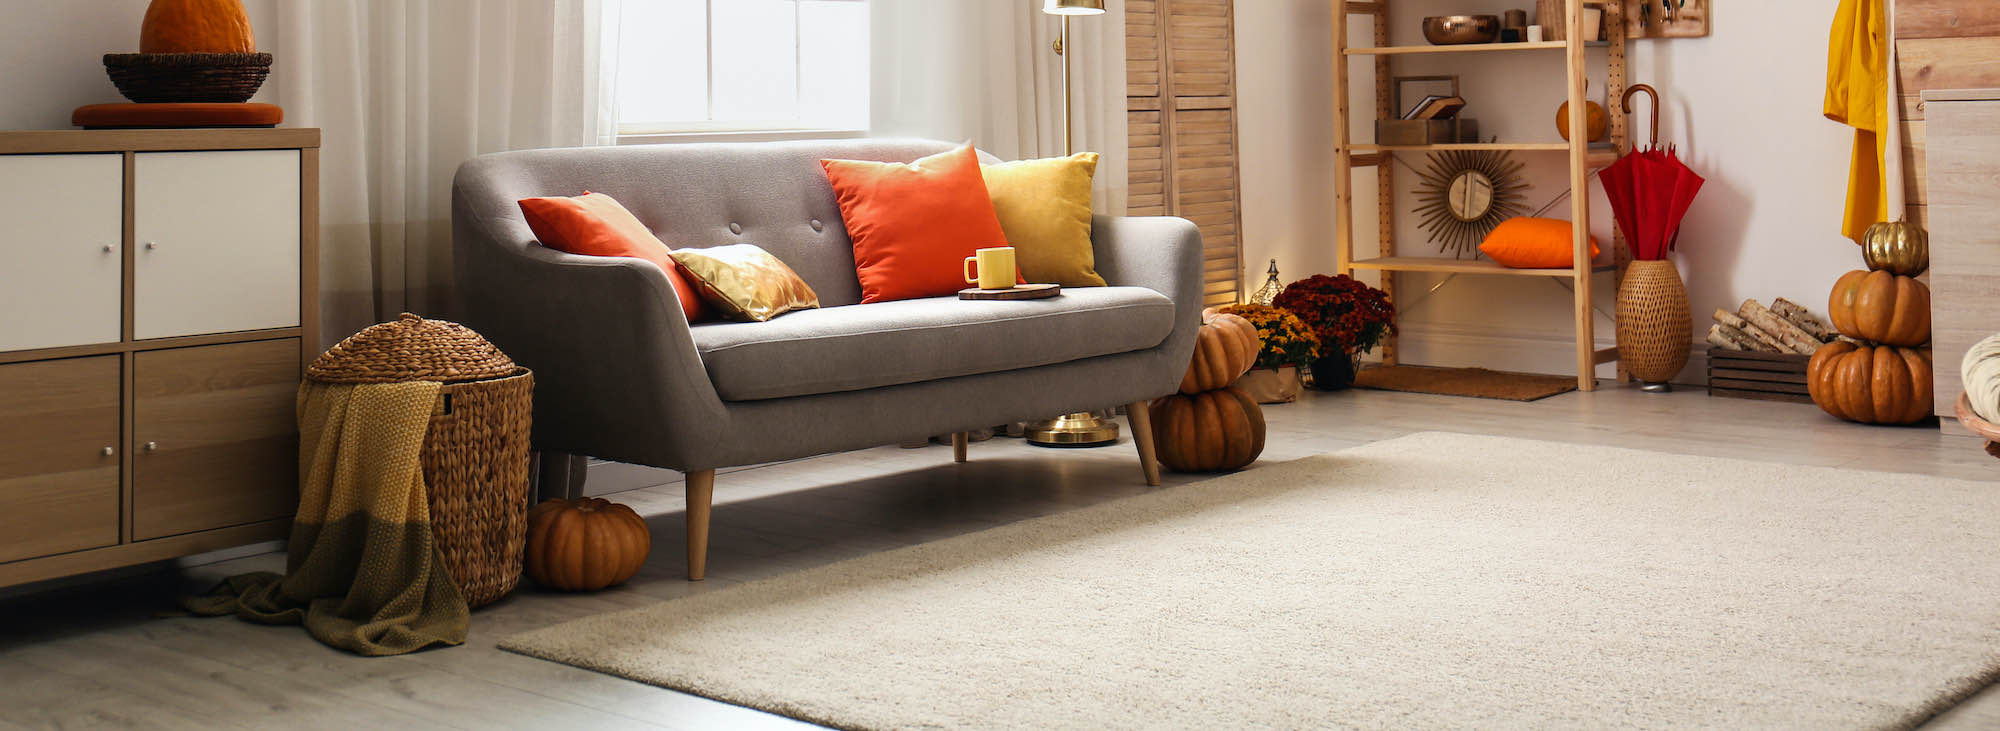 carpet cleaning during fall holidays